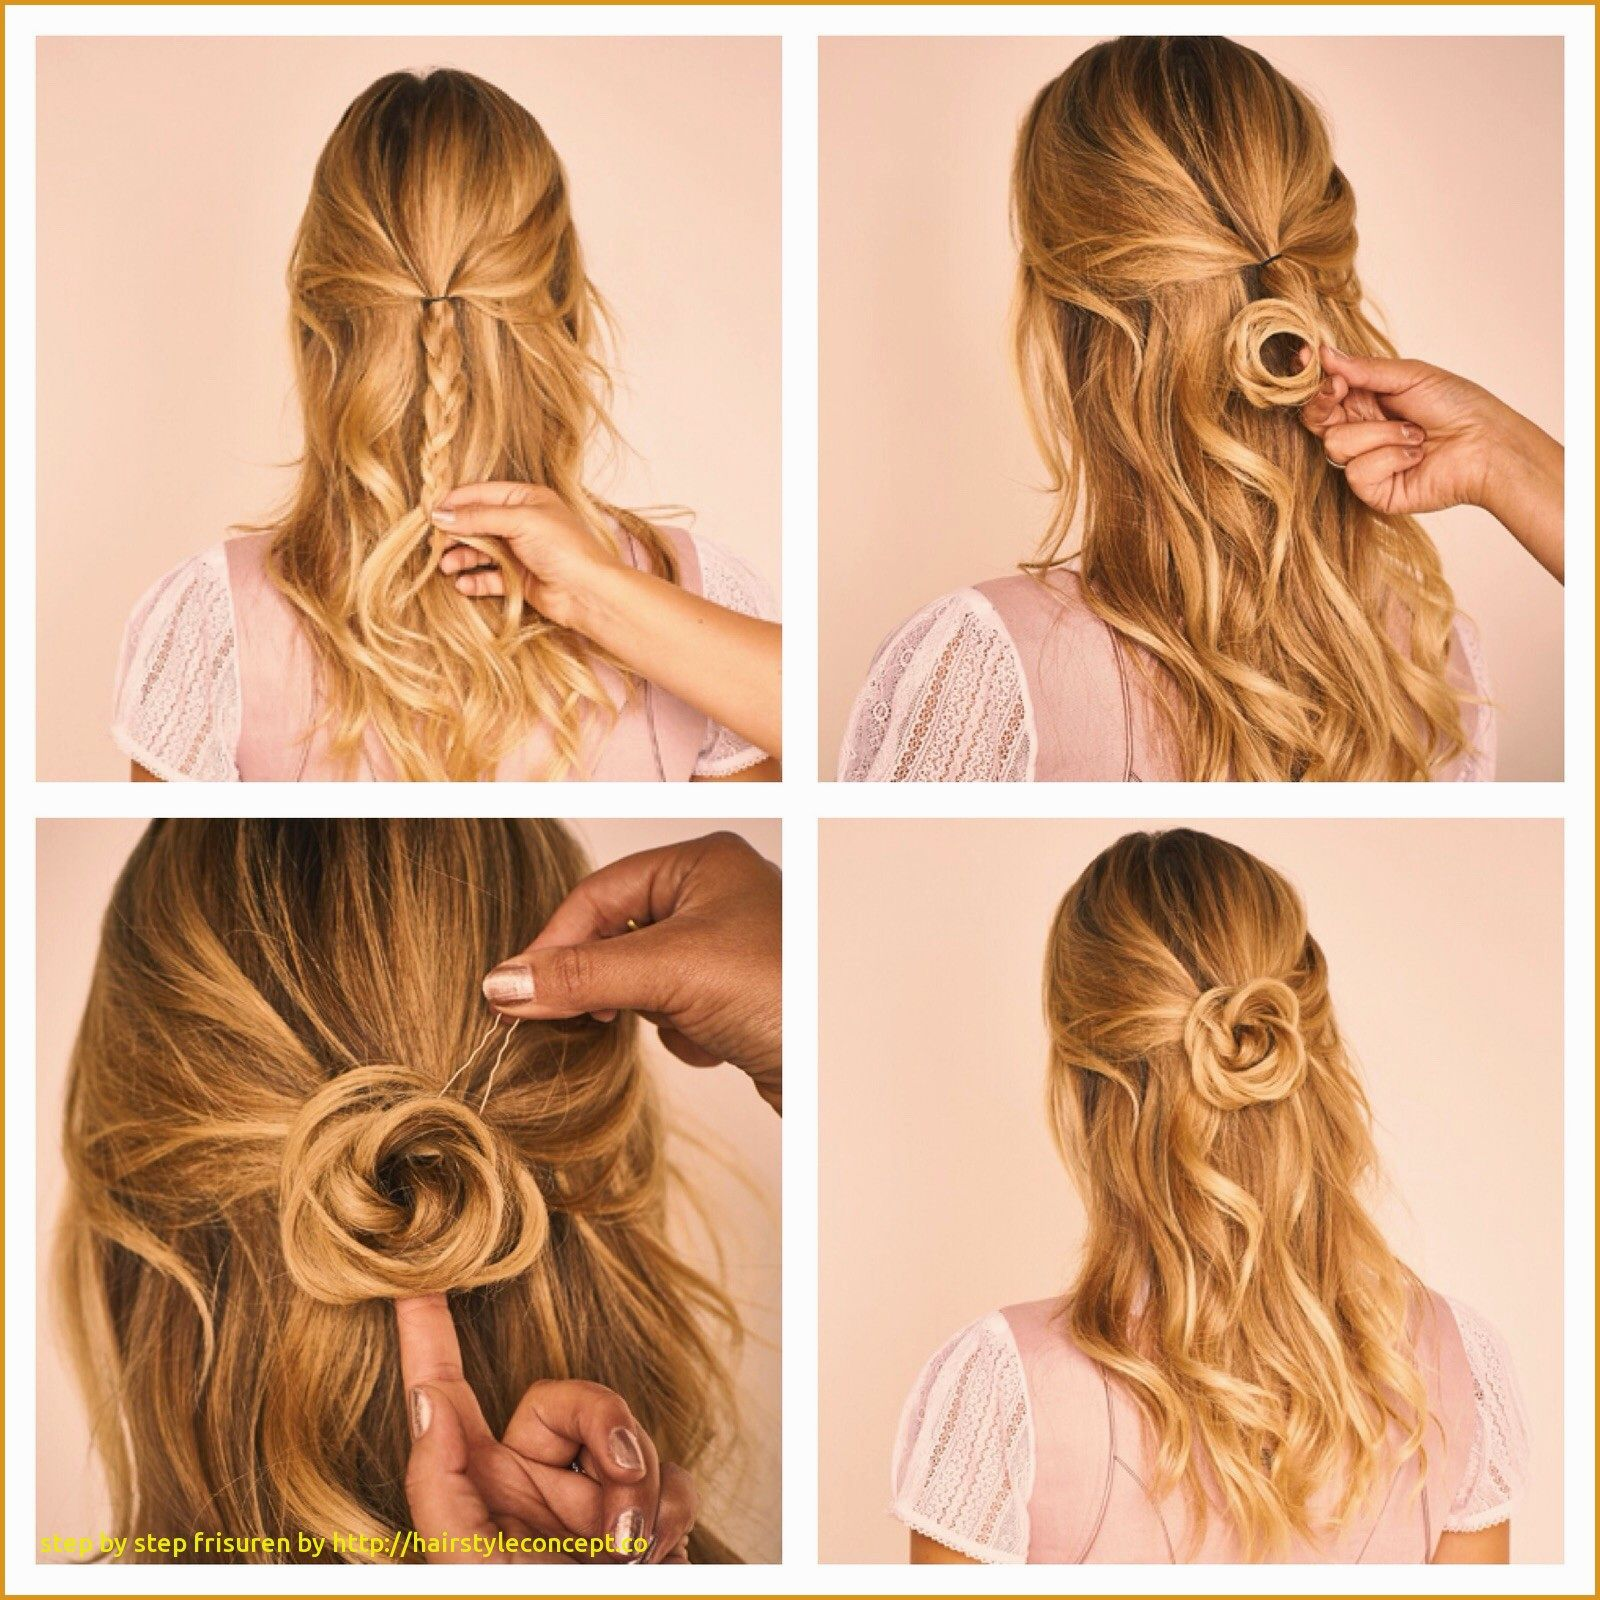 lovely new hair trends photo-Beautiful New Hair Trends patterns